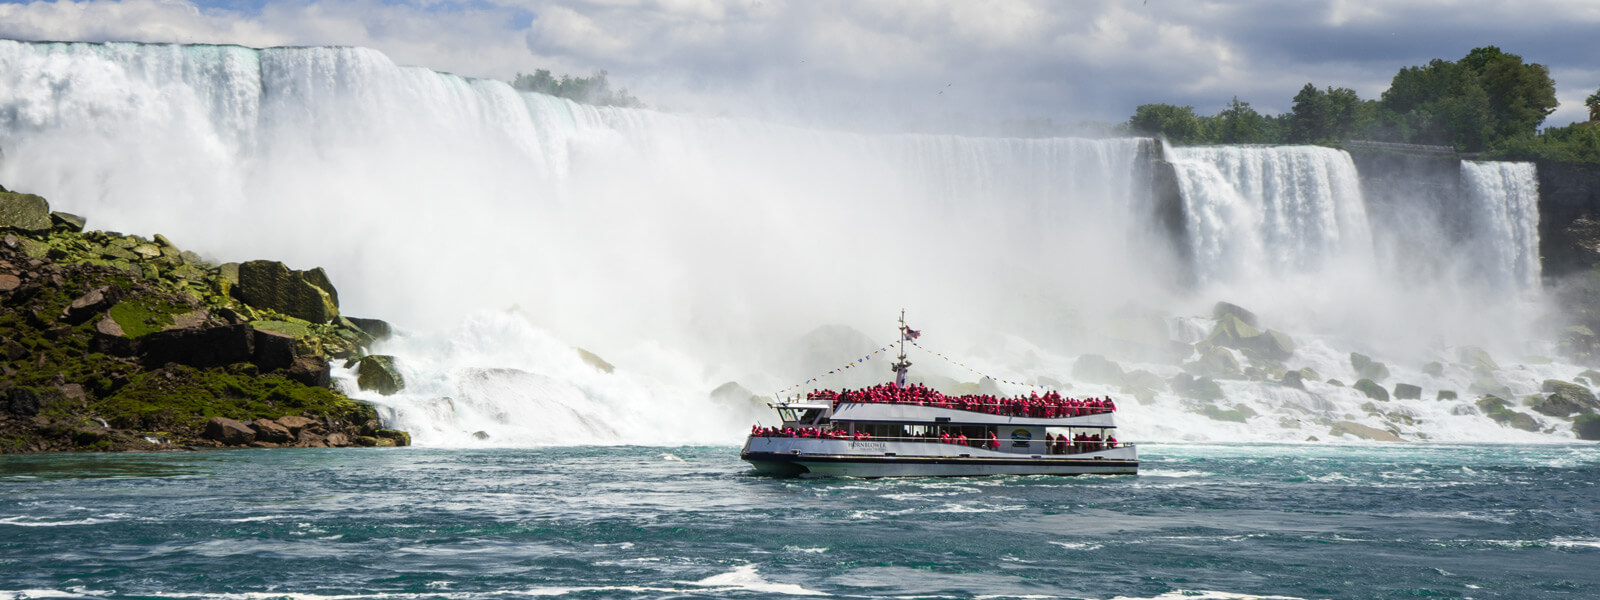 Boat Cruise At Niagara Falls